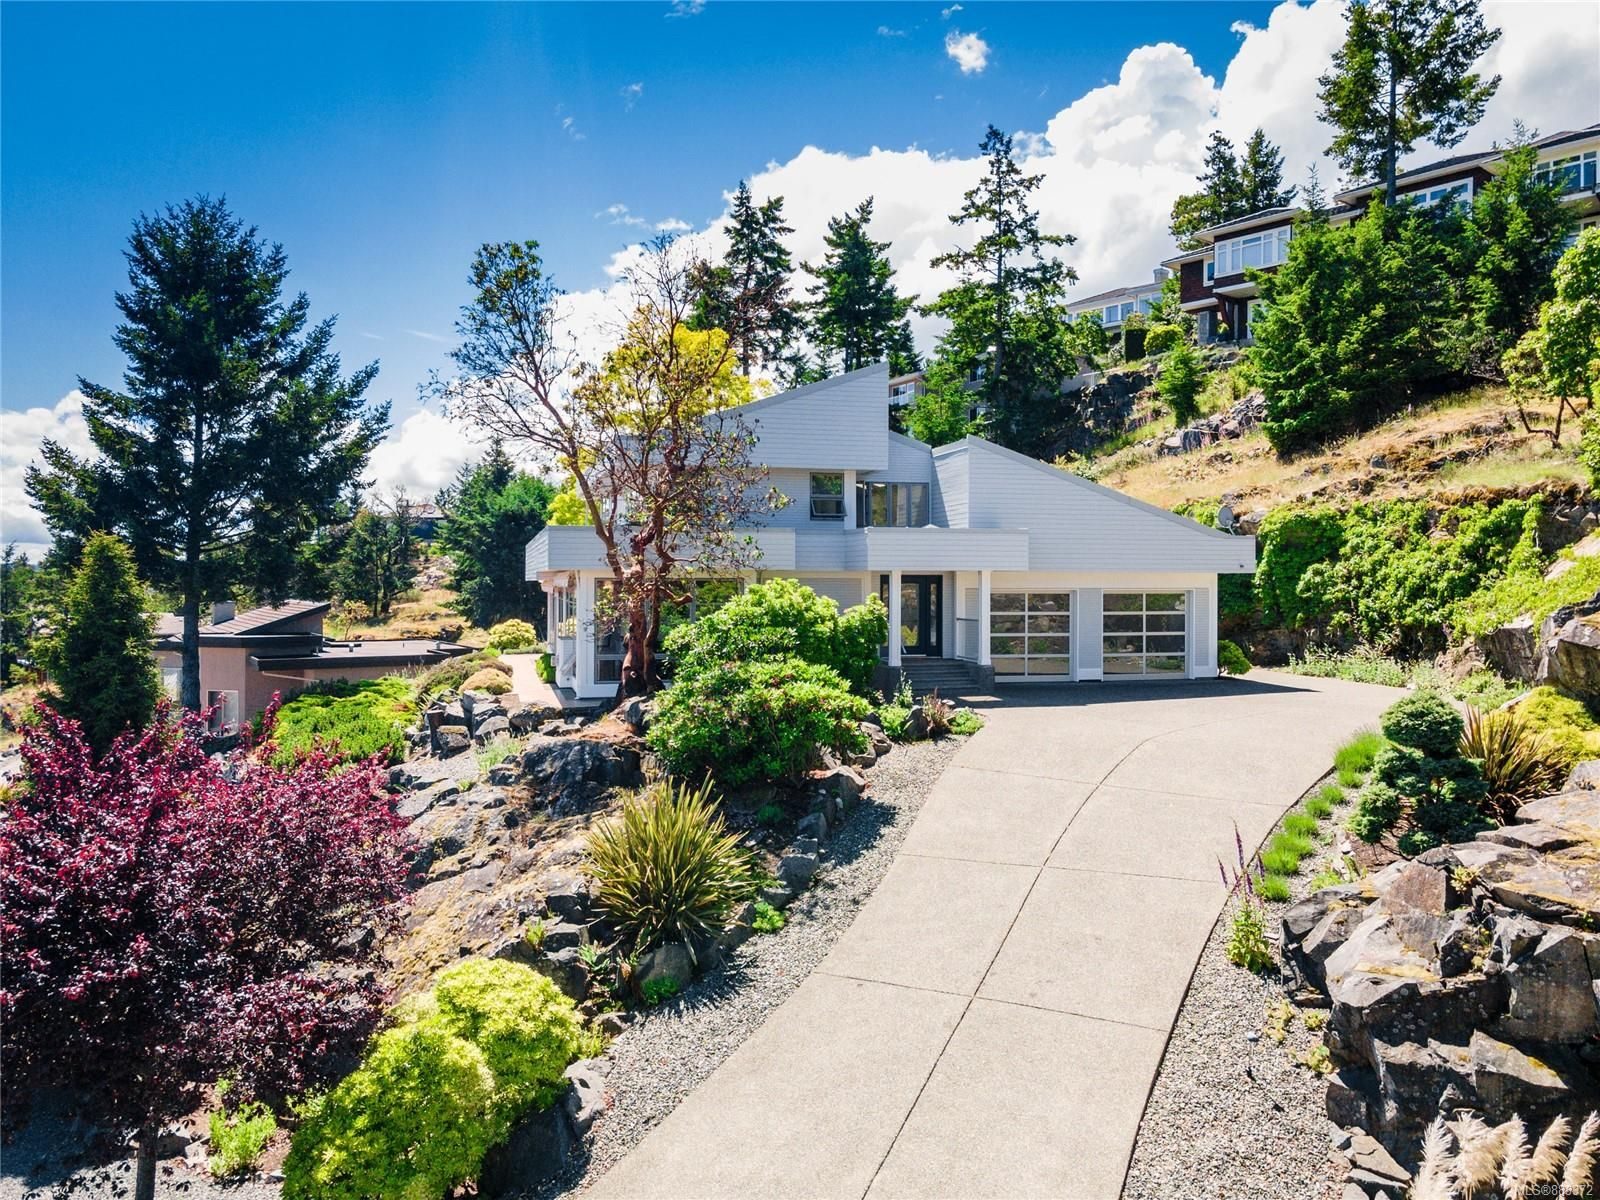 Main Photo: 3468 Redden Rd in : PQ Fairwinds House for sale (Parksville/Qualicum)  : MLS®# 883372